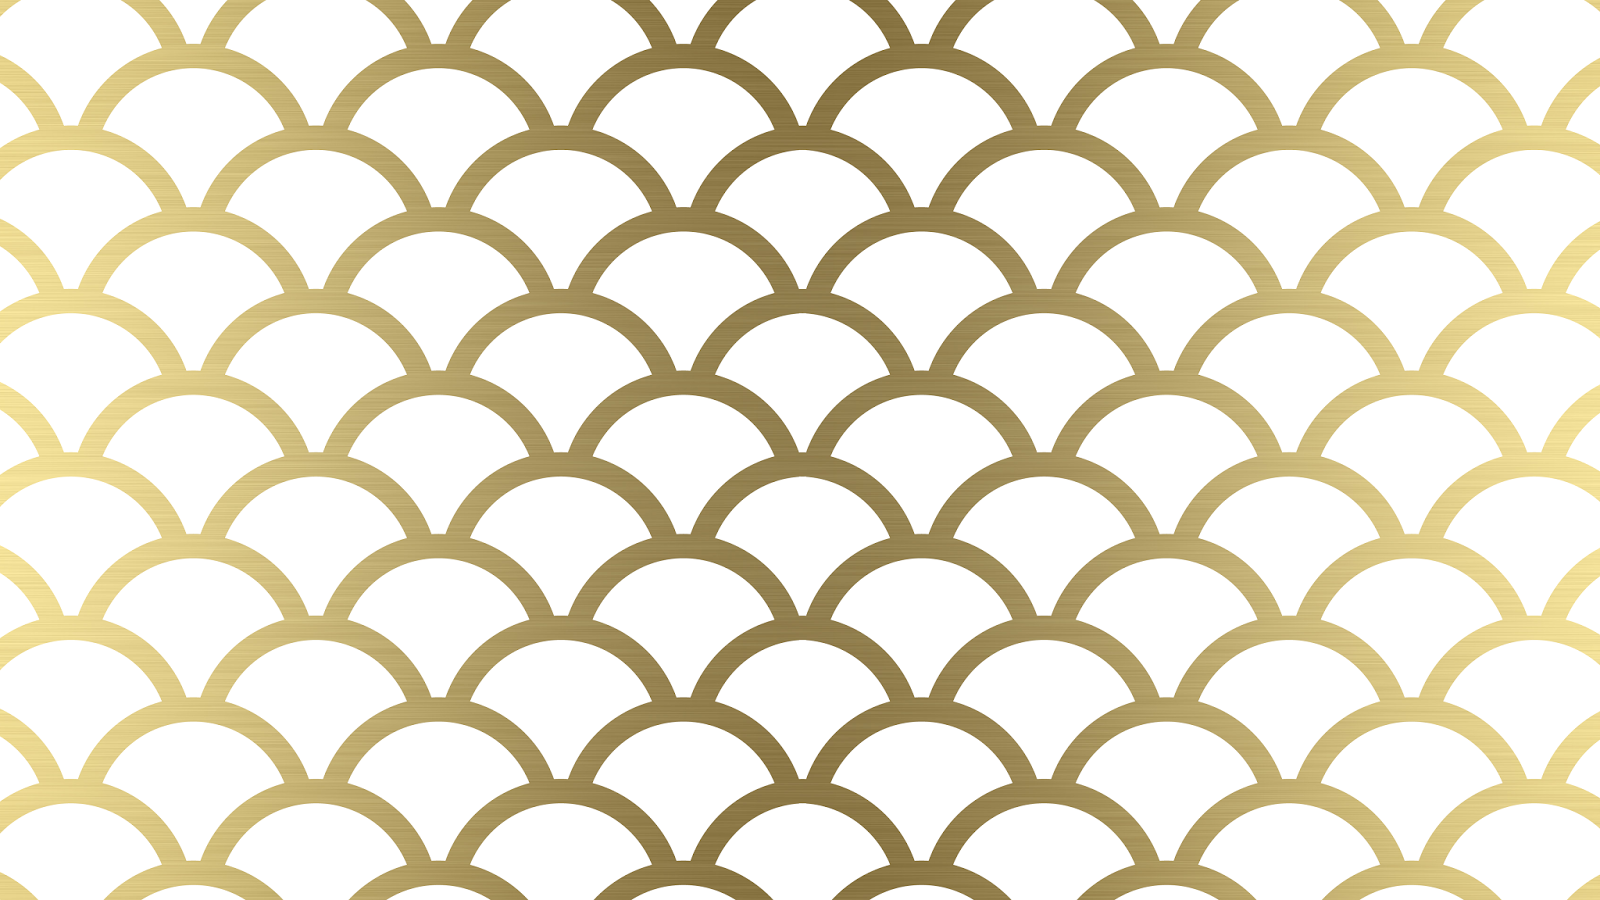 Black and gold chevron background 7 free wallpaper - Gold desktop background ...